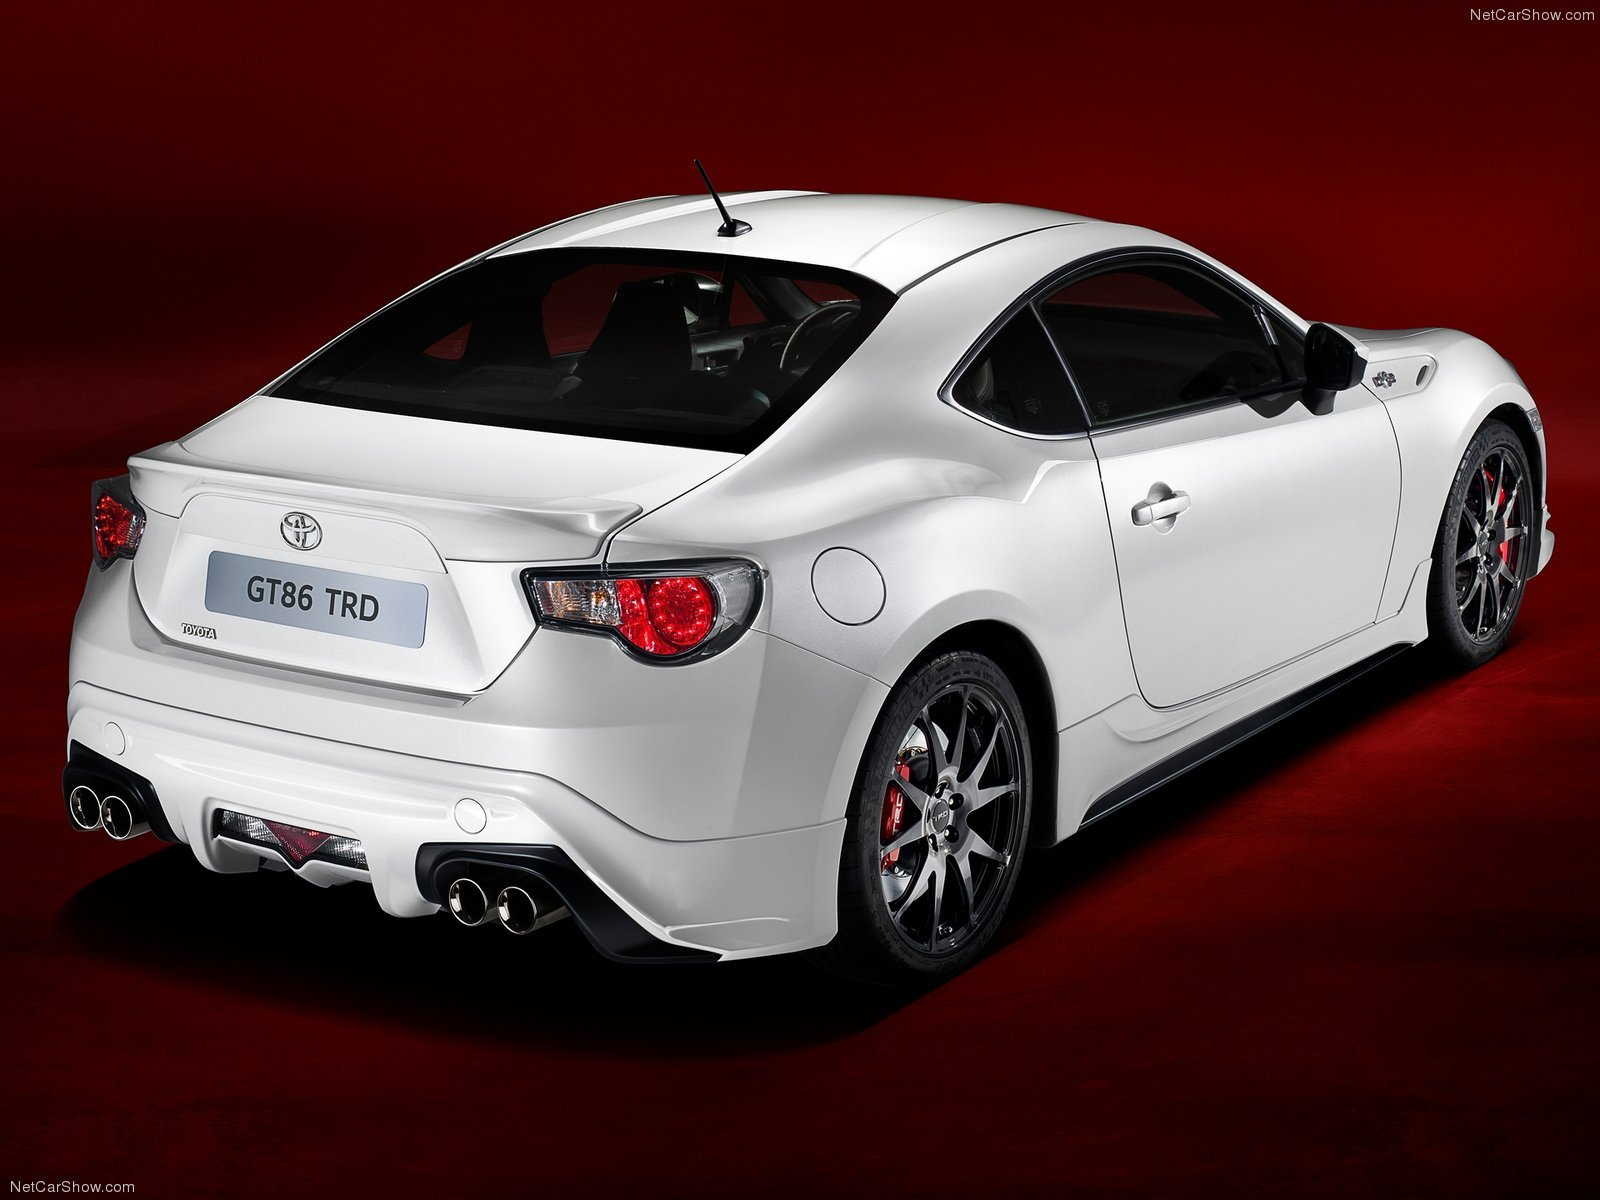 Toyota GT86 TRD 2014 Japan White Blanche Coupe 2 Doors Wallpaper    1600x1200   394617   WallpaperUP